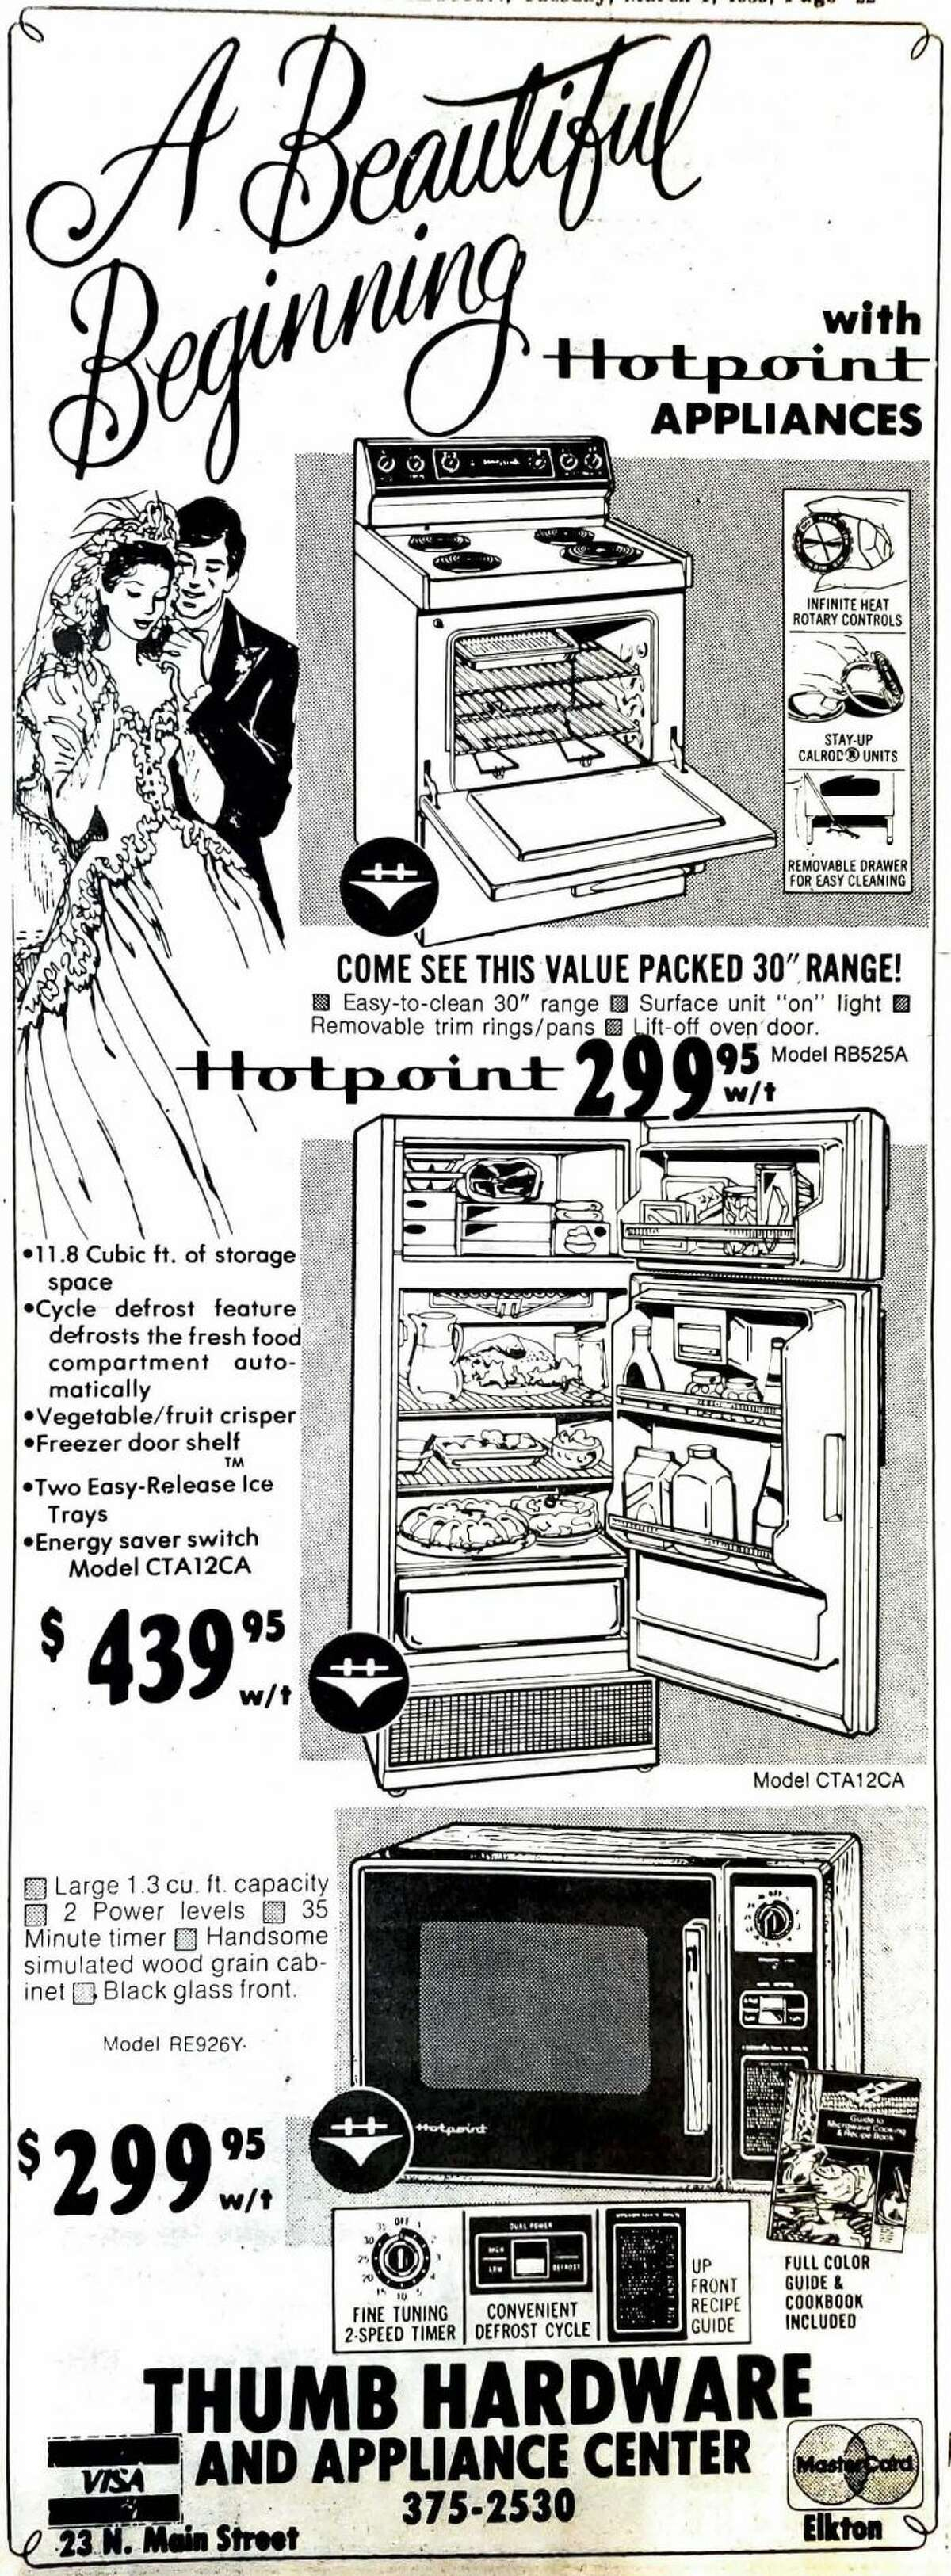 An ad featured in the bridal section - nothing spells marital bliss like a $300 microwave the size of a small Volkswagen.